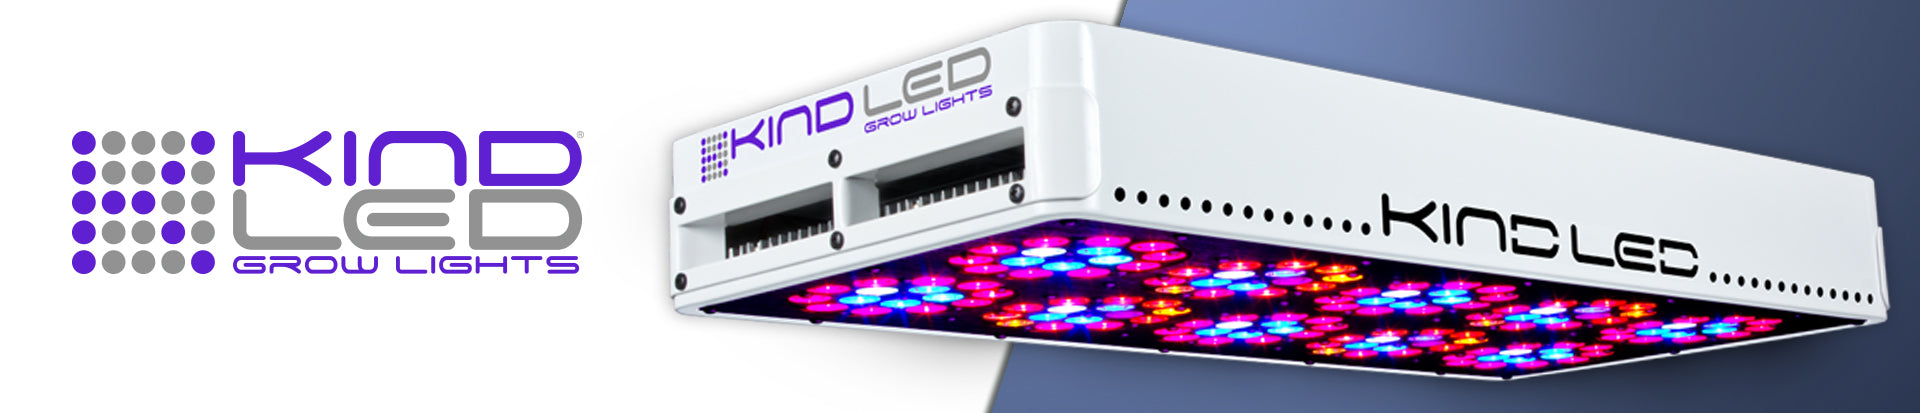 Kind LED Grow Lights L600